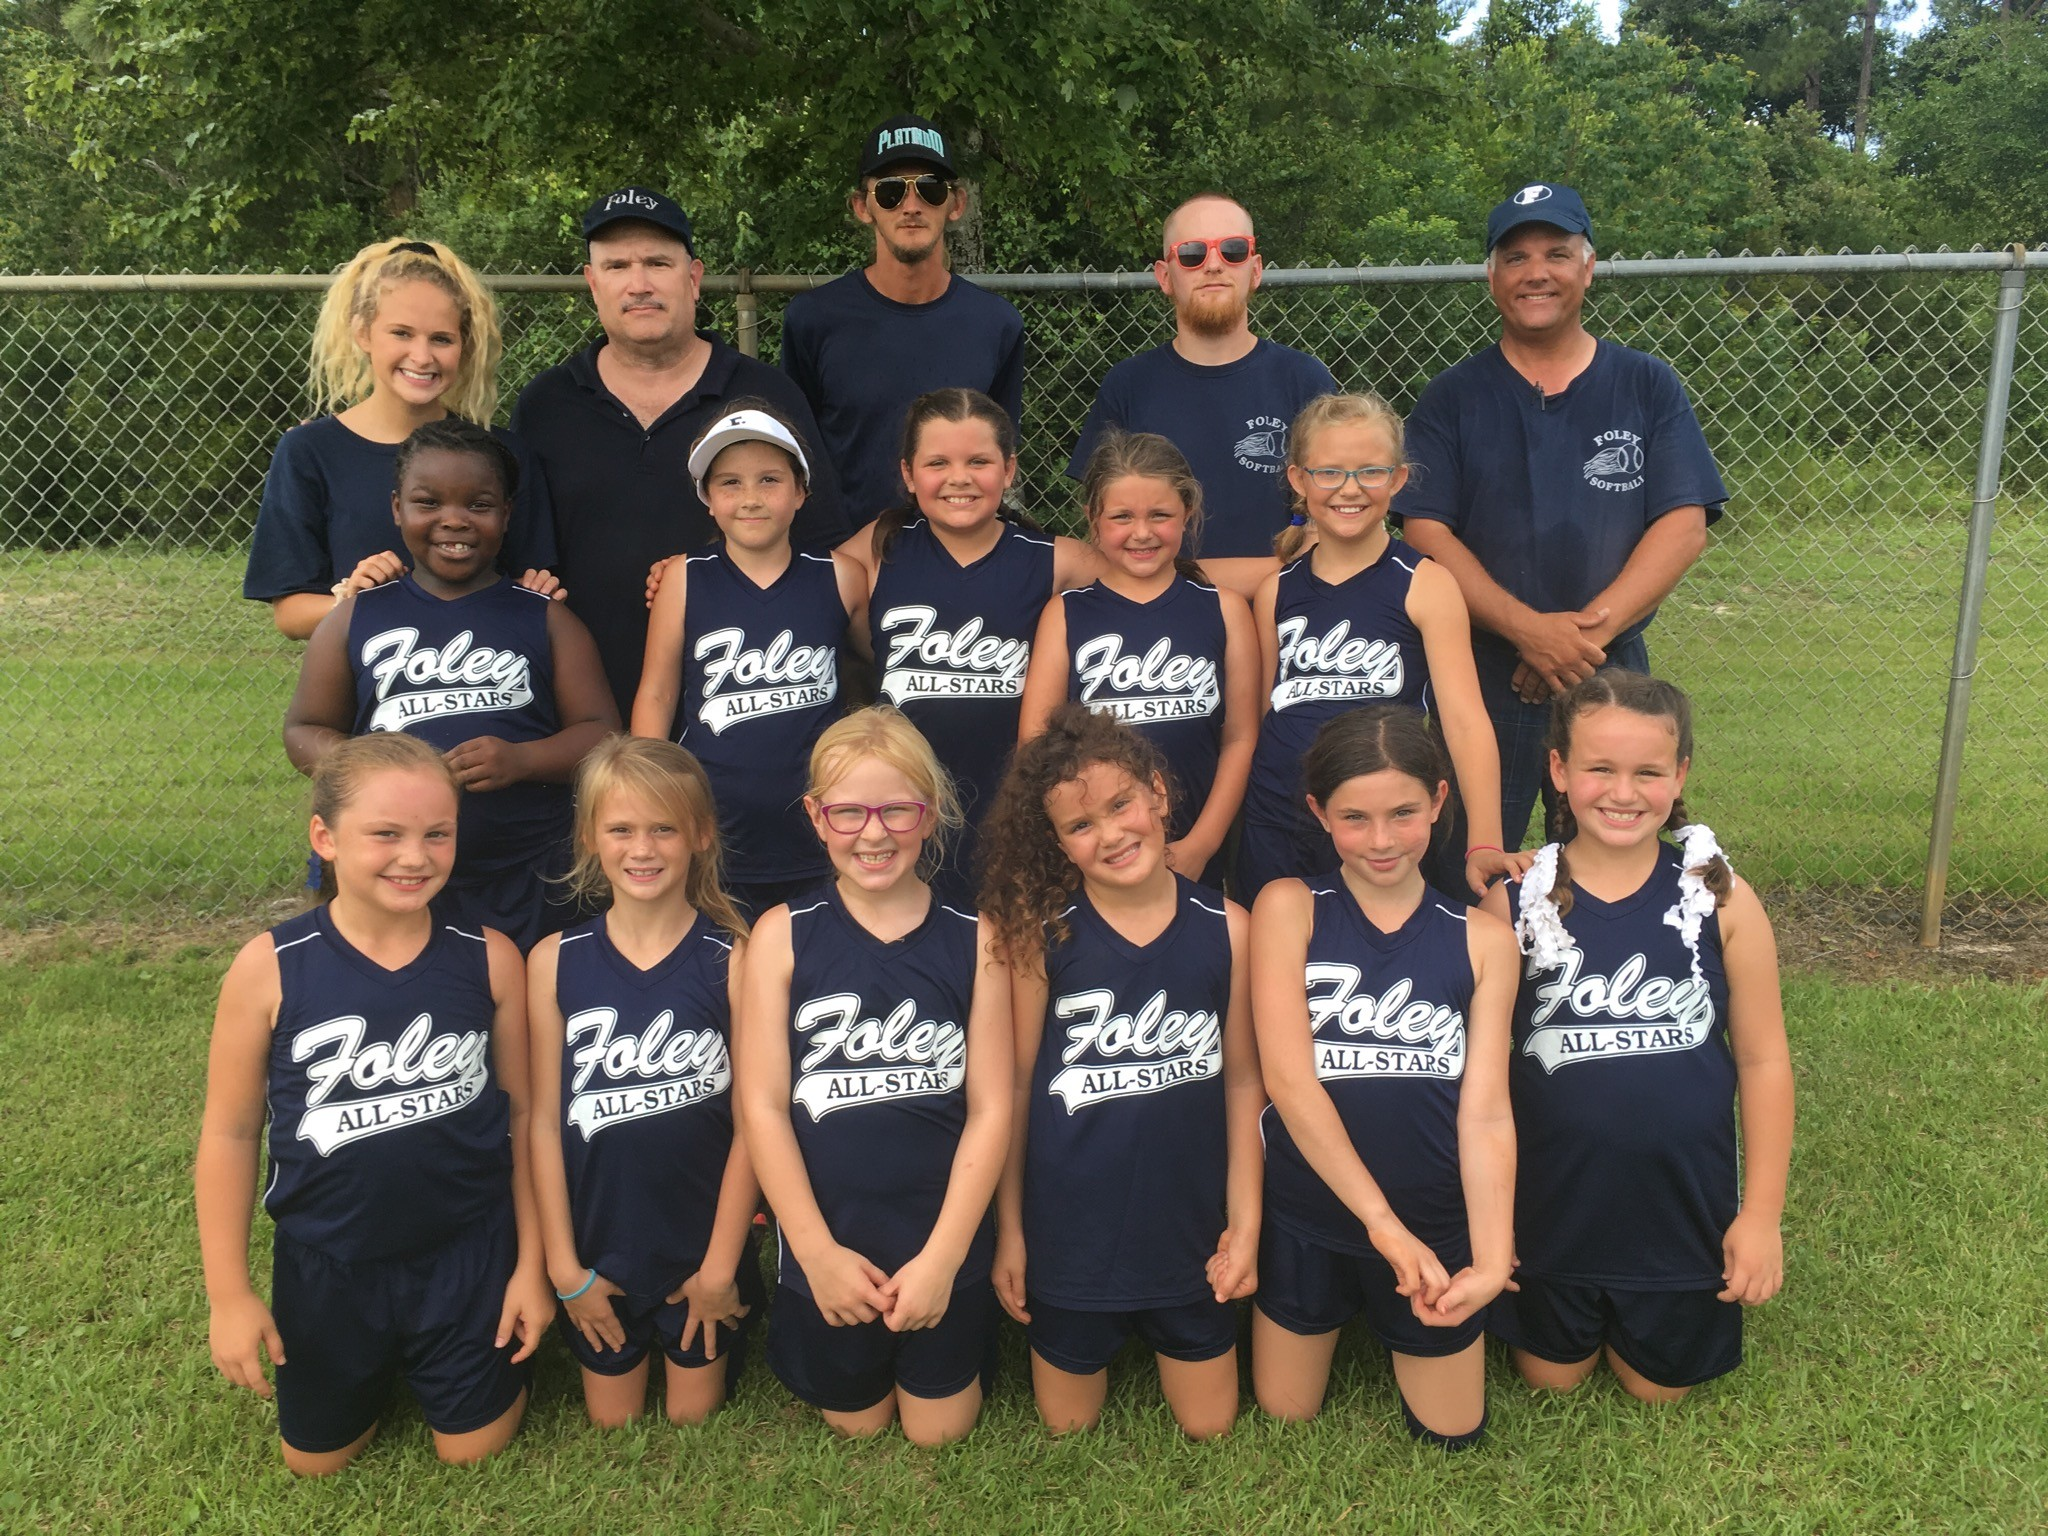 8U Age Group - Head Coach: Paul Shoenight. Assistants: Hunter Burnett, Nick Williamson, Matt Grundy, Victoria Burnett, and Amber Beavers. Players Standing Left to Right: Ashanti Williams, Makayla Shoenight, Kindle Potter, Machaela Newell, Haydyn Trawick. Kneeling Left to Right: Lynleigh May, Kaitlyn Williamson, Emily Crosby, Kylie McGehe, McKenzie Beavers, Bailee Egbert Player on Team but not in Picture: Constance Hall.